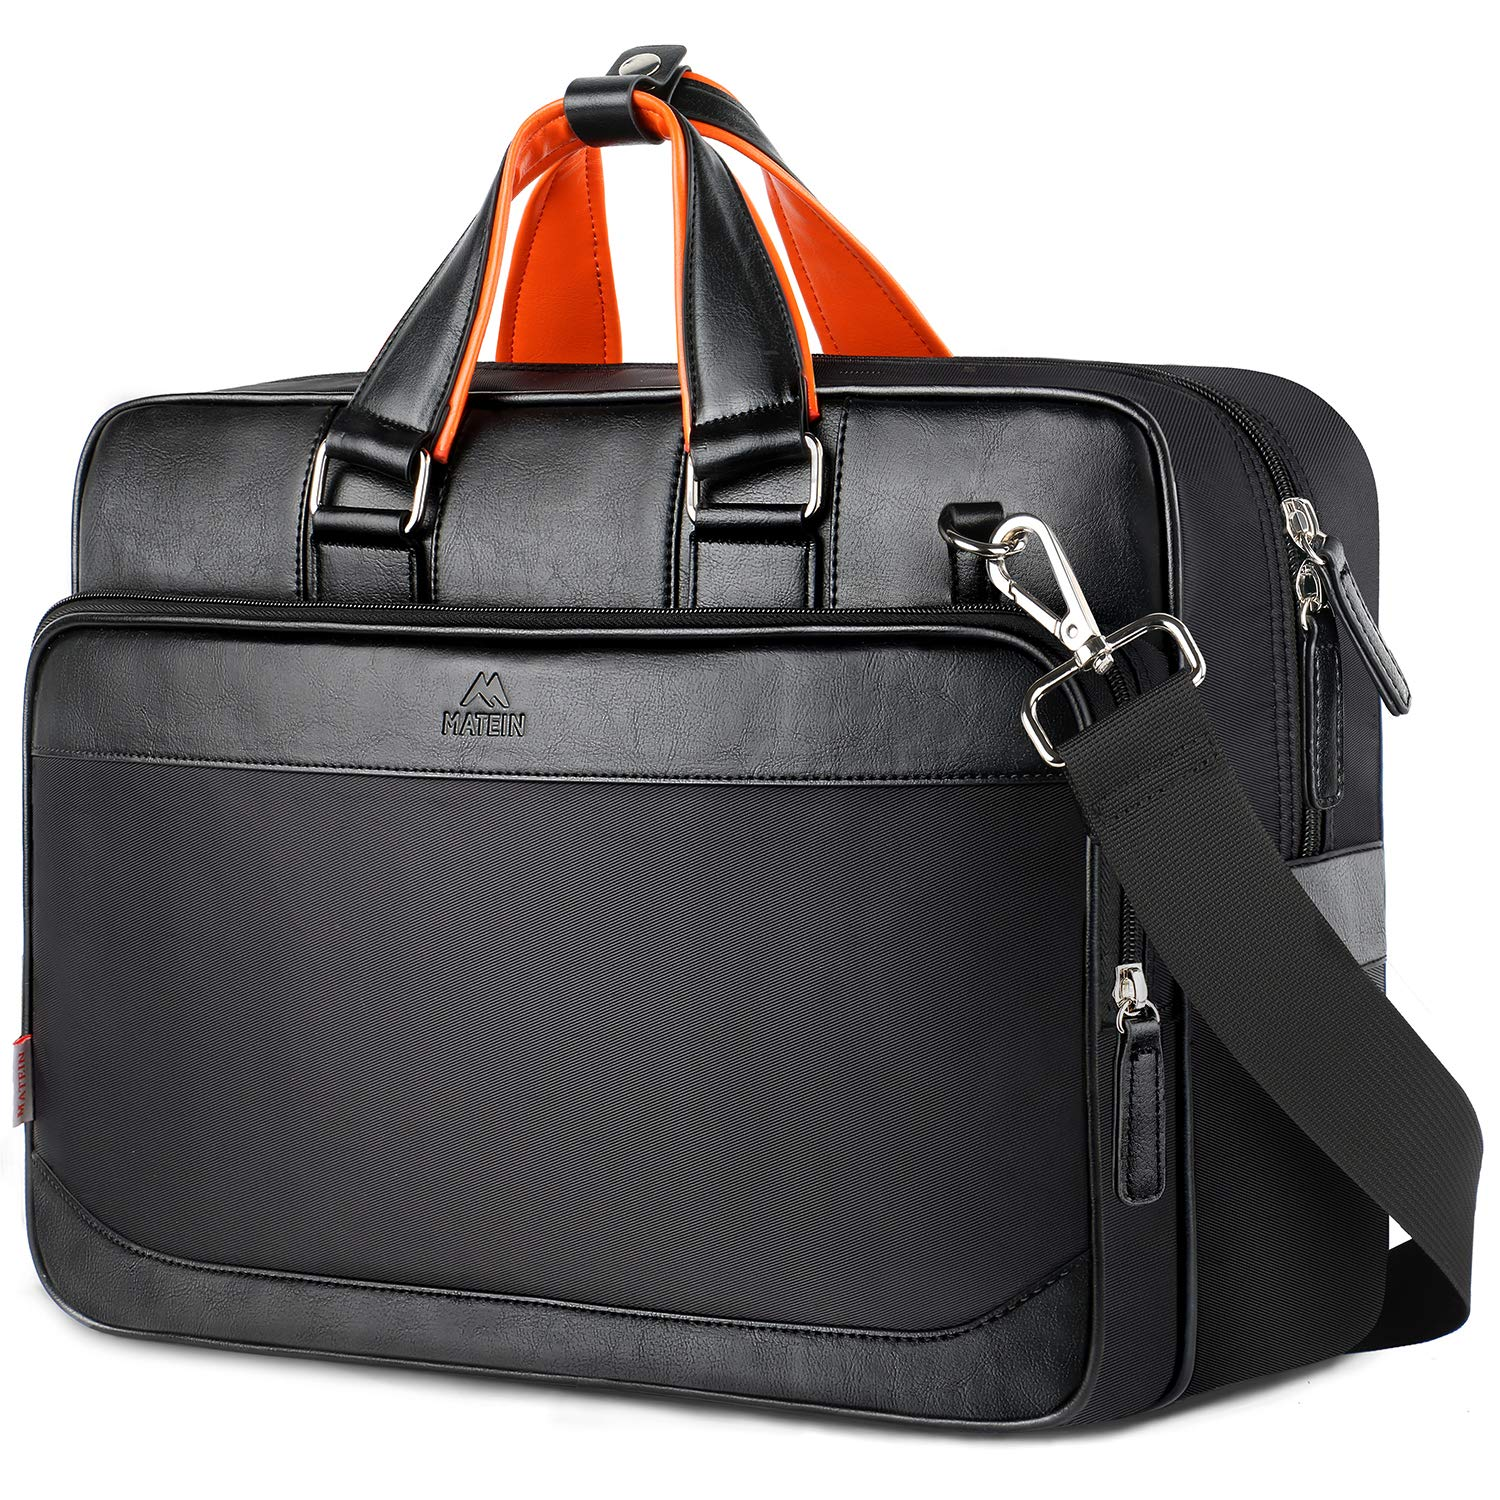 MATEIN Laptop Briefcase Bag, Extra Large Leather Business Travel Messenger Computer Bags for Men and Women Fits 17 Inch Laptop Notebook - Black